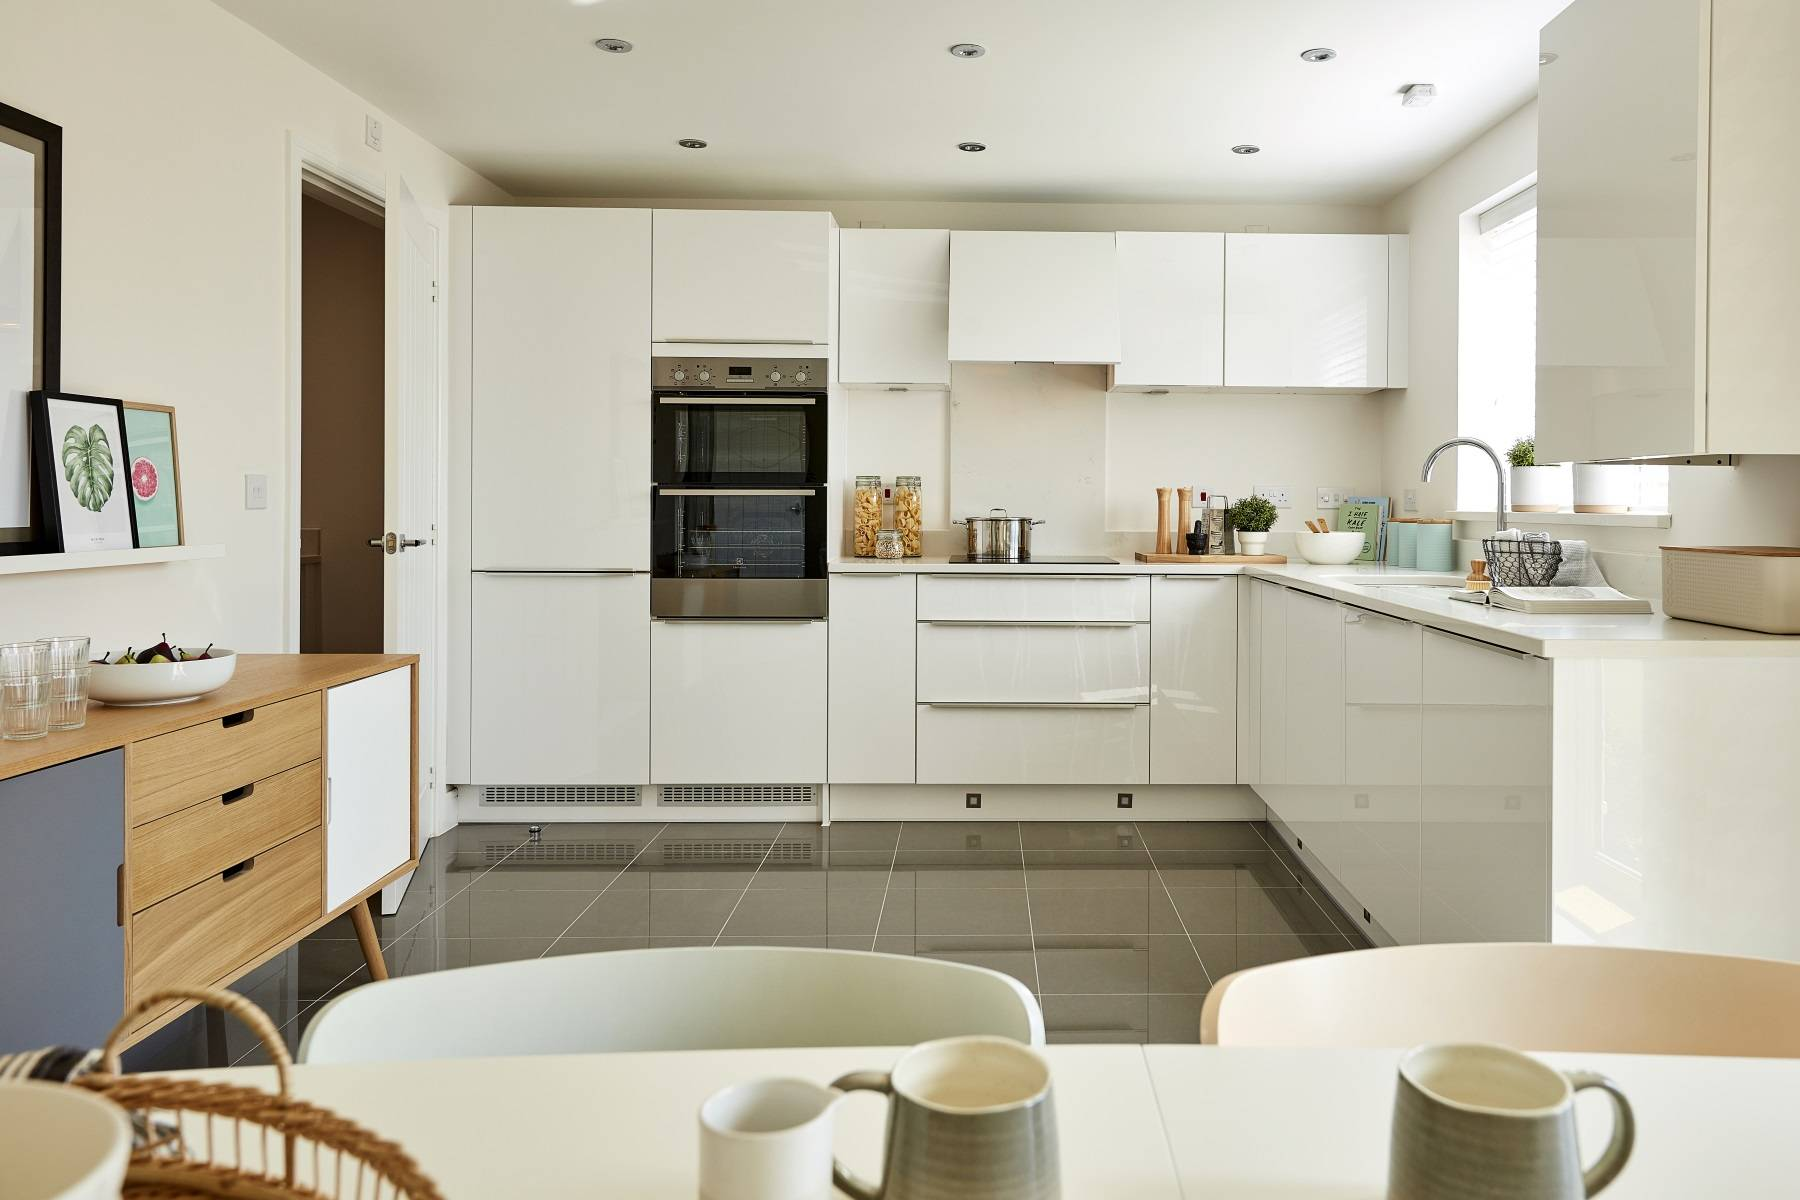 TW Exeter - Copleston Heights - Midford example kitchen